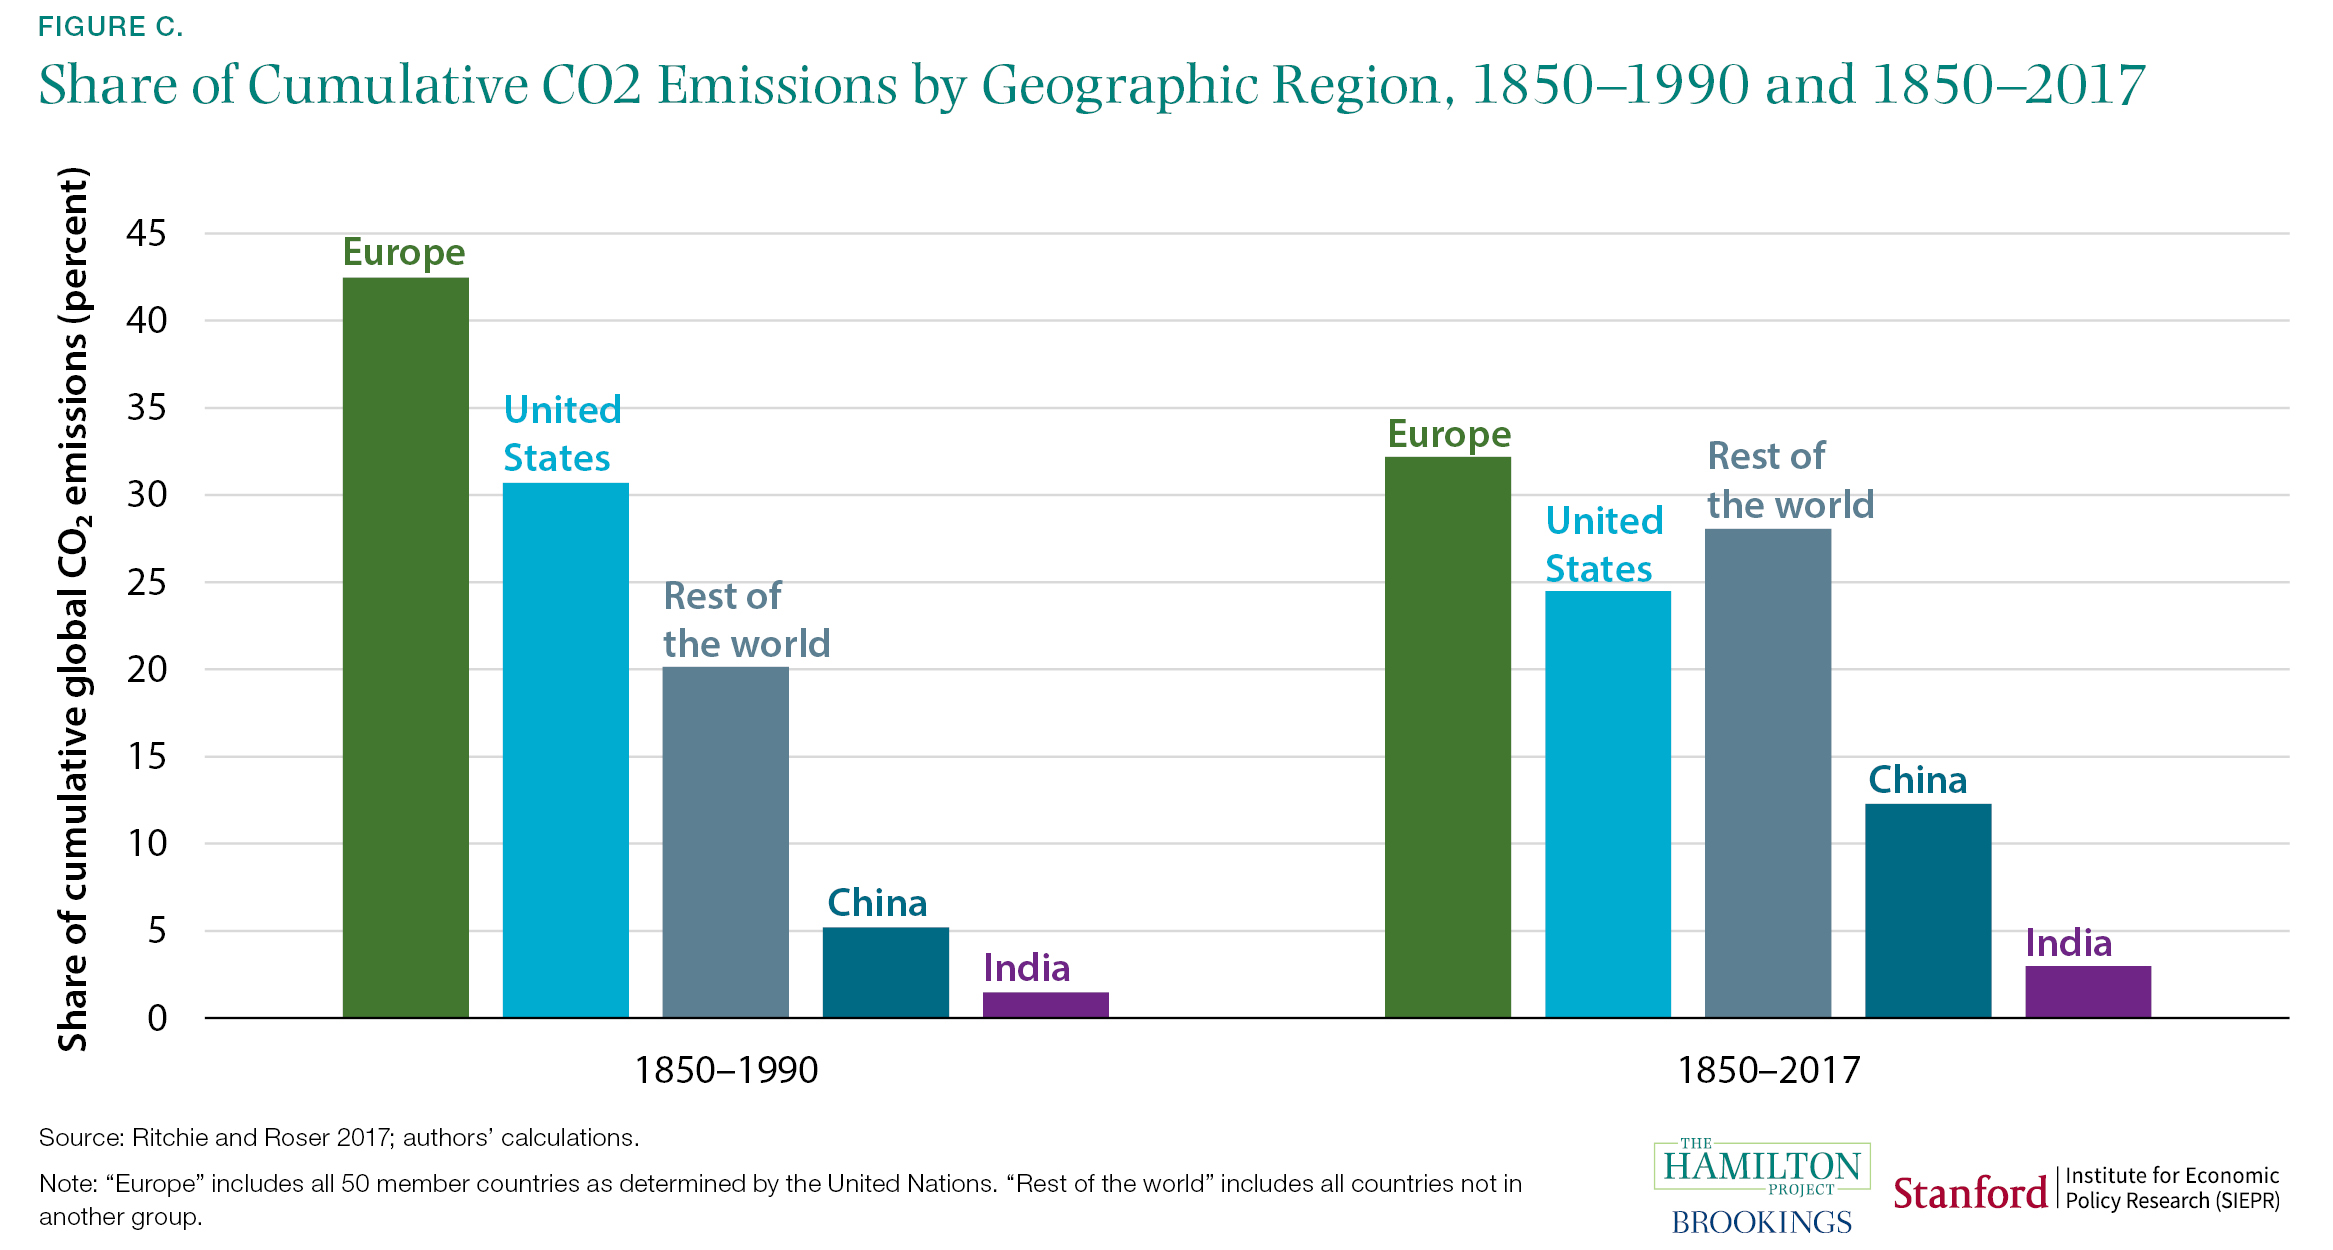 Share of Cumulative CO2 Emissions by Geographic Region, 1850-1990 and 1850-2017